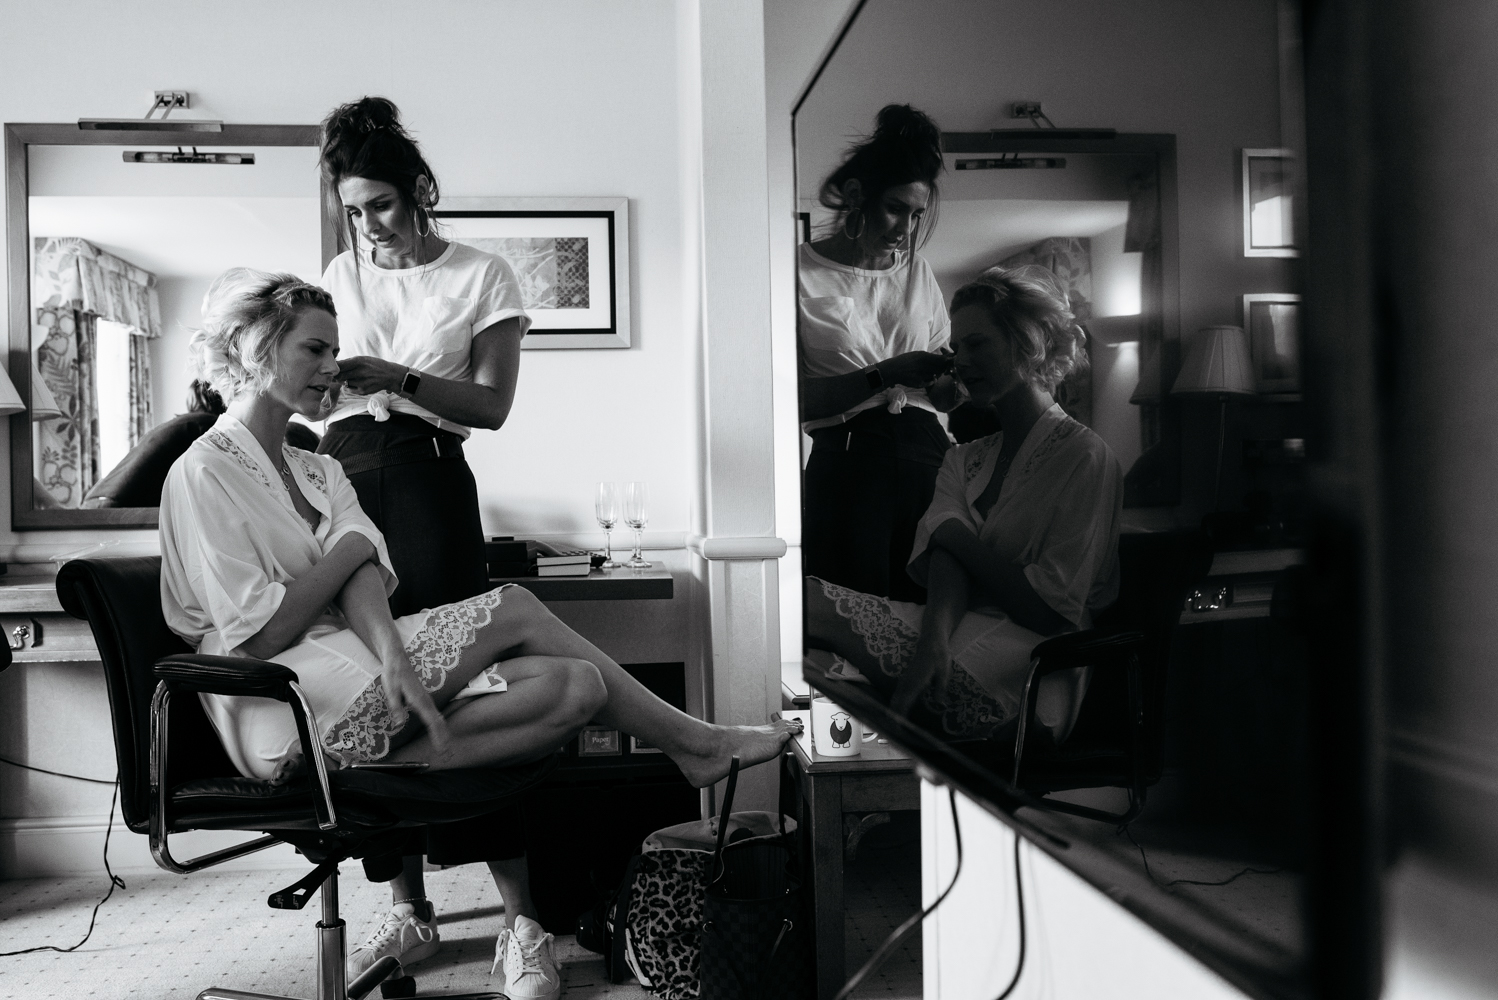 A black and white photograph of a bridesmaid having her hair done during morning bridal preparations